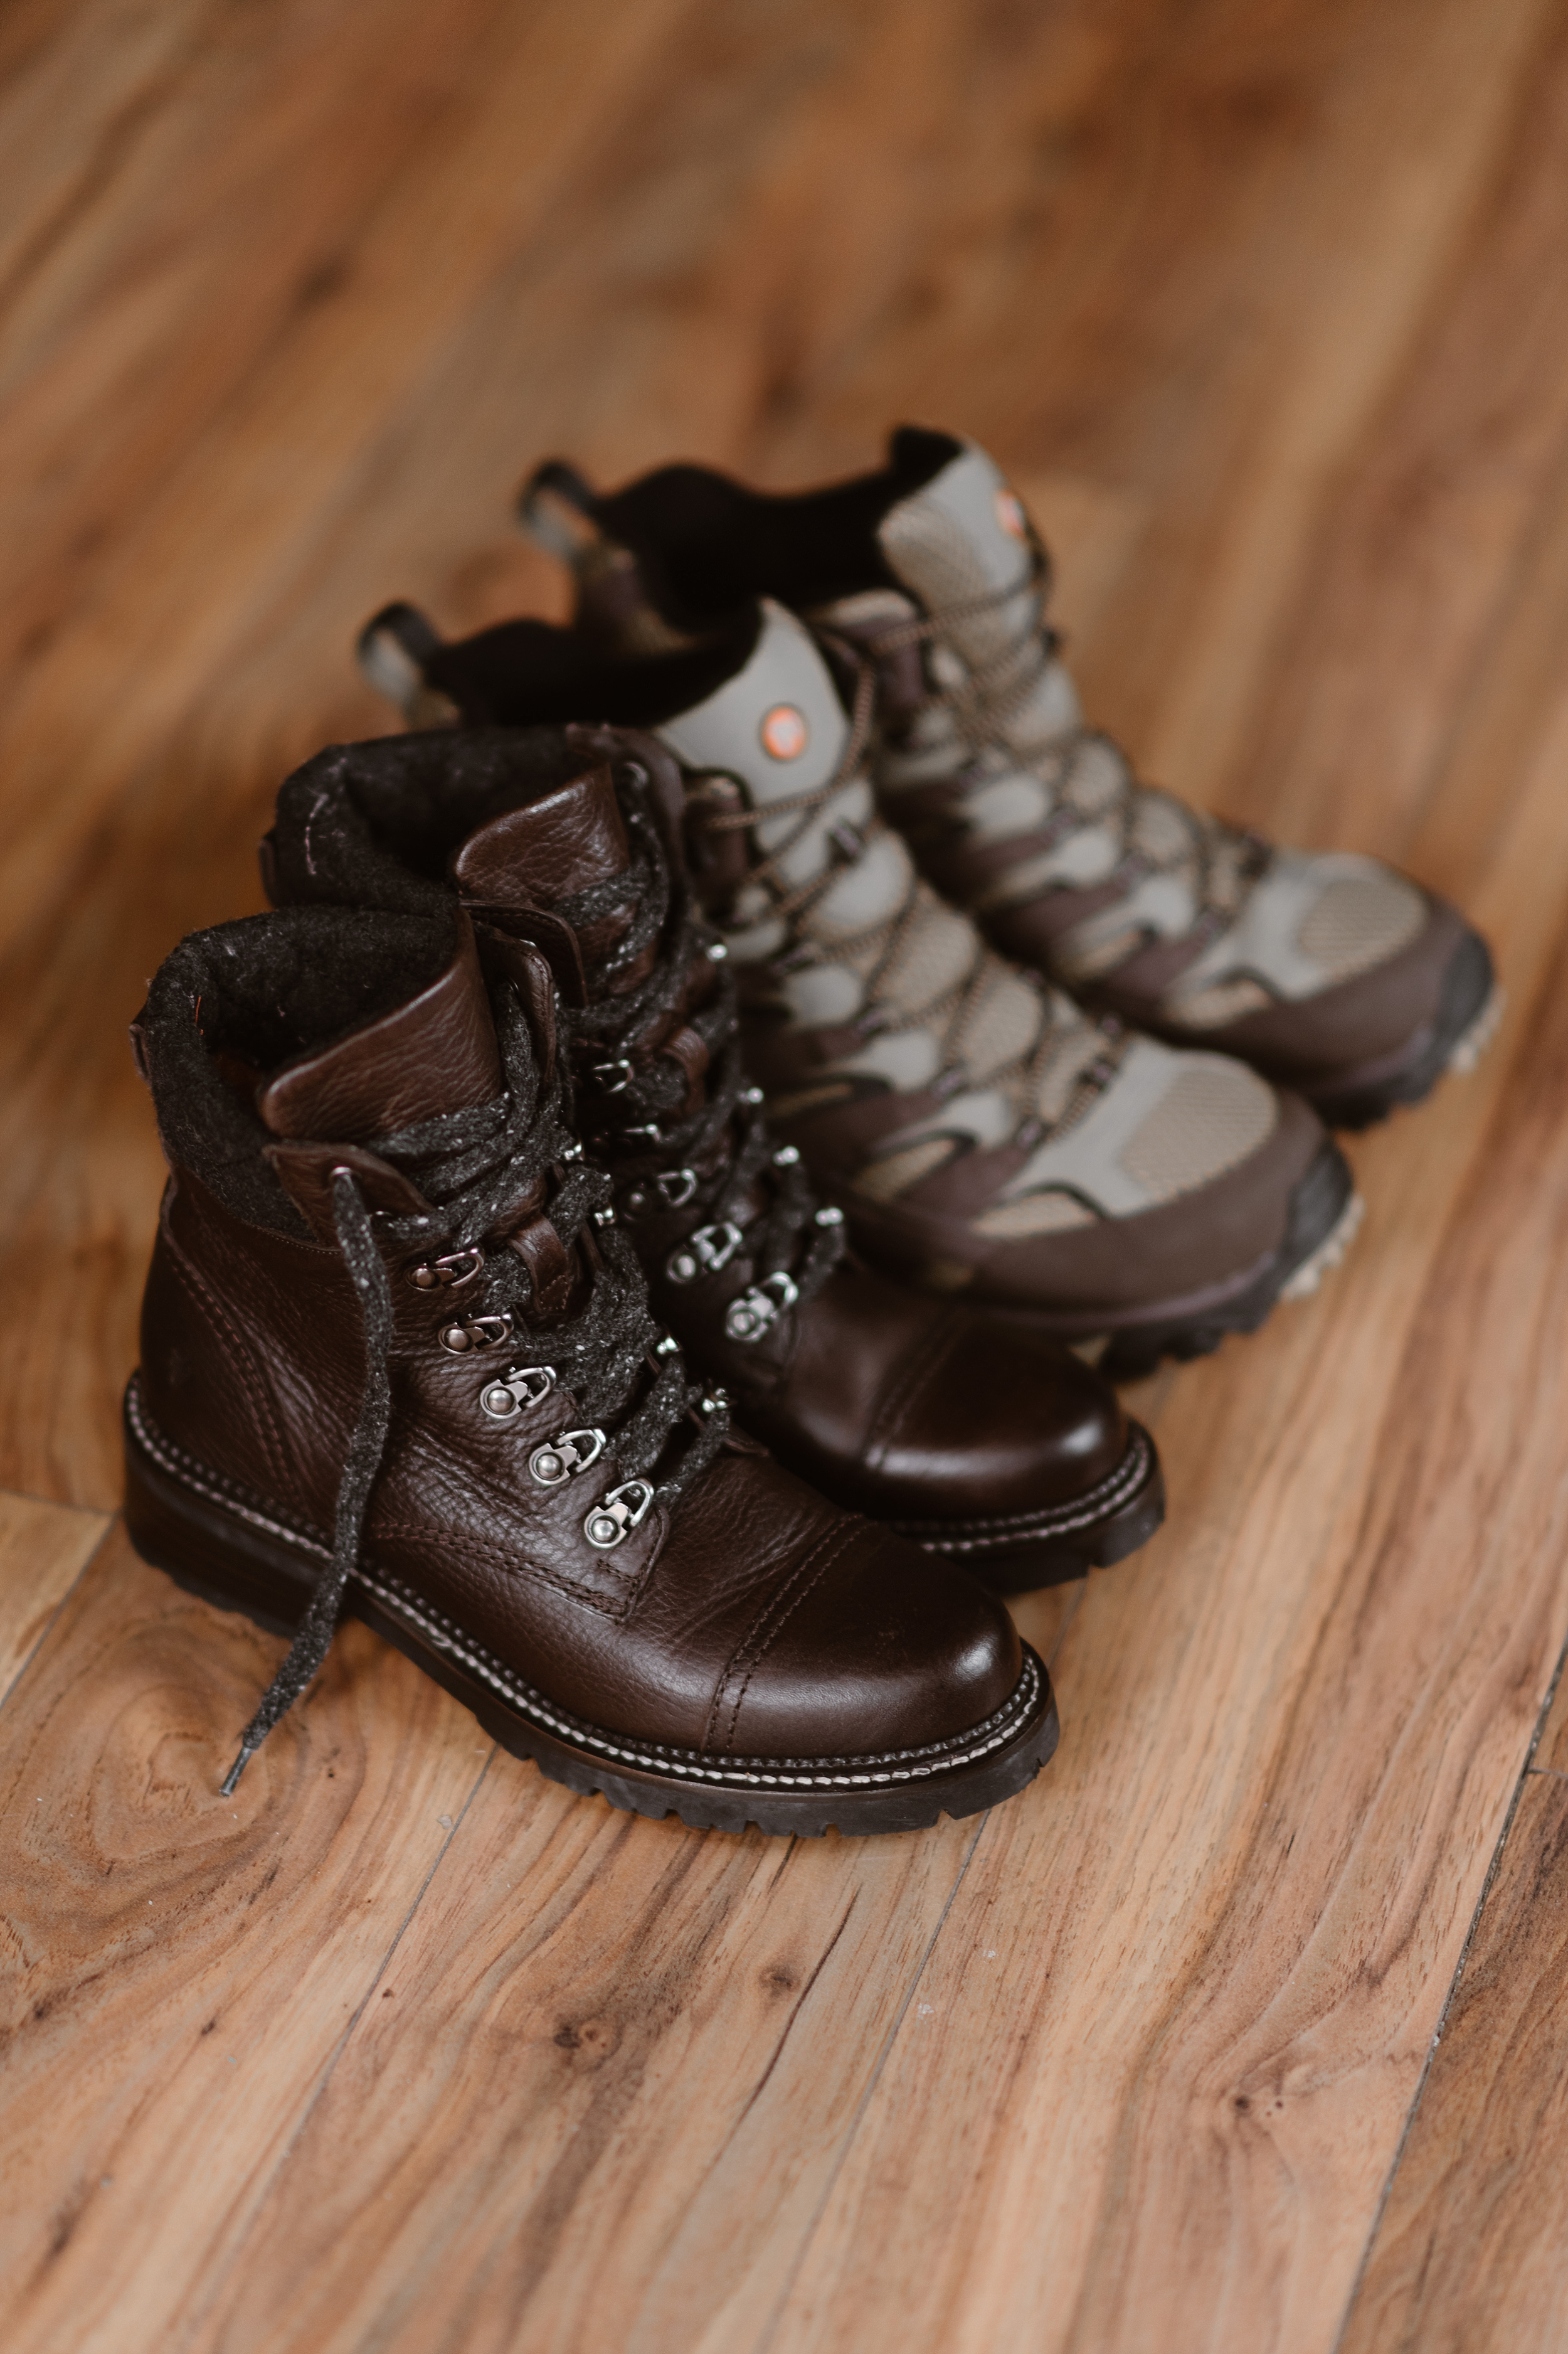 A dark pair of hiking boots and a lighter pair of hiking boots sit on a wooden floor in an Ouray, Colorado Airbnb. The boots, his and hers, belong to the bride and groom and will be a part of their elopement ceremony in their 4x4 wedding.